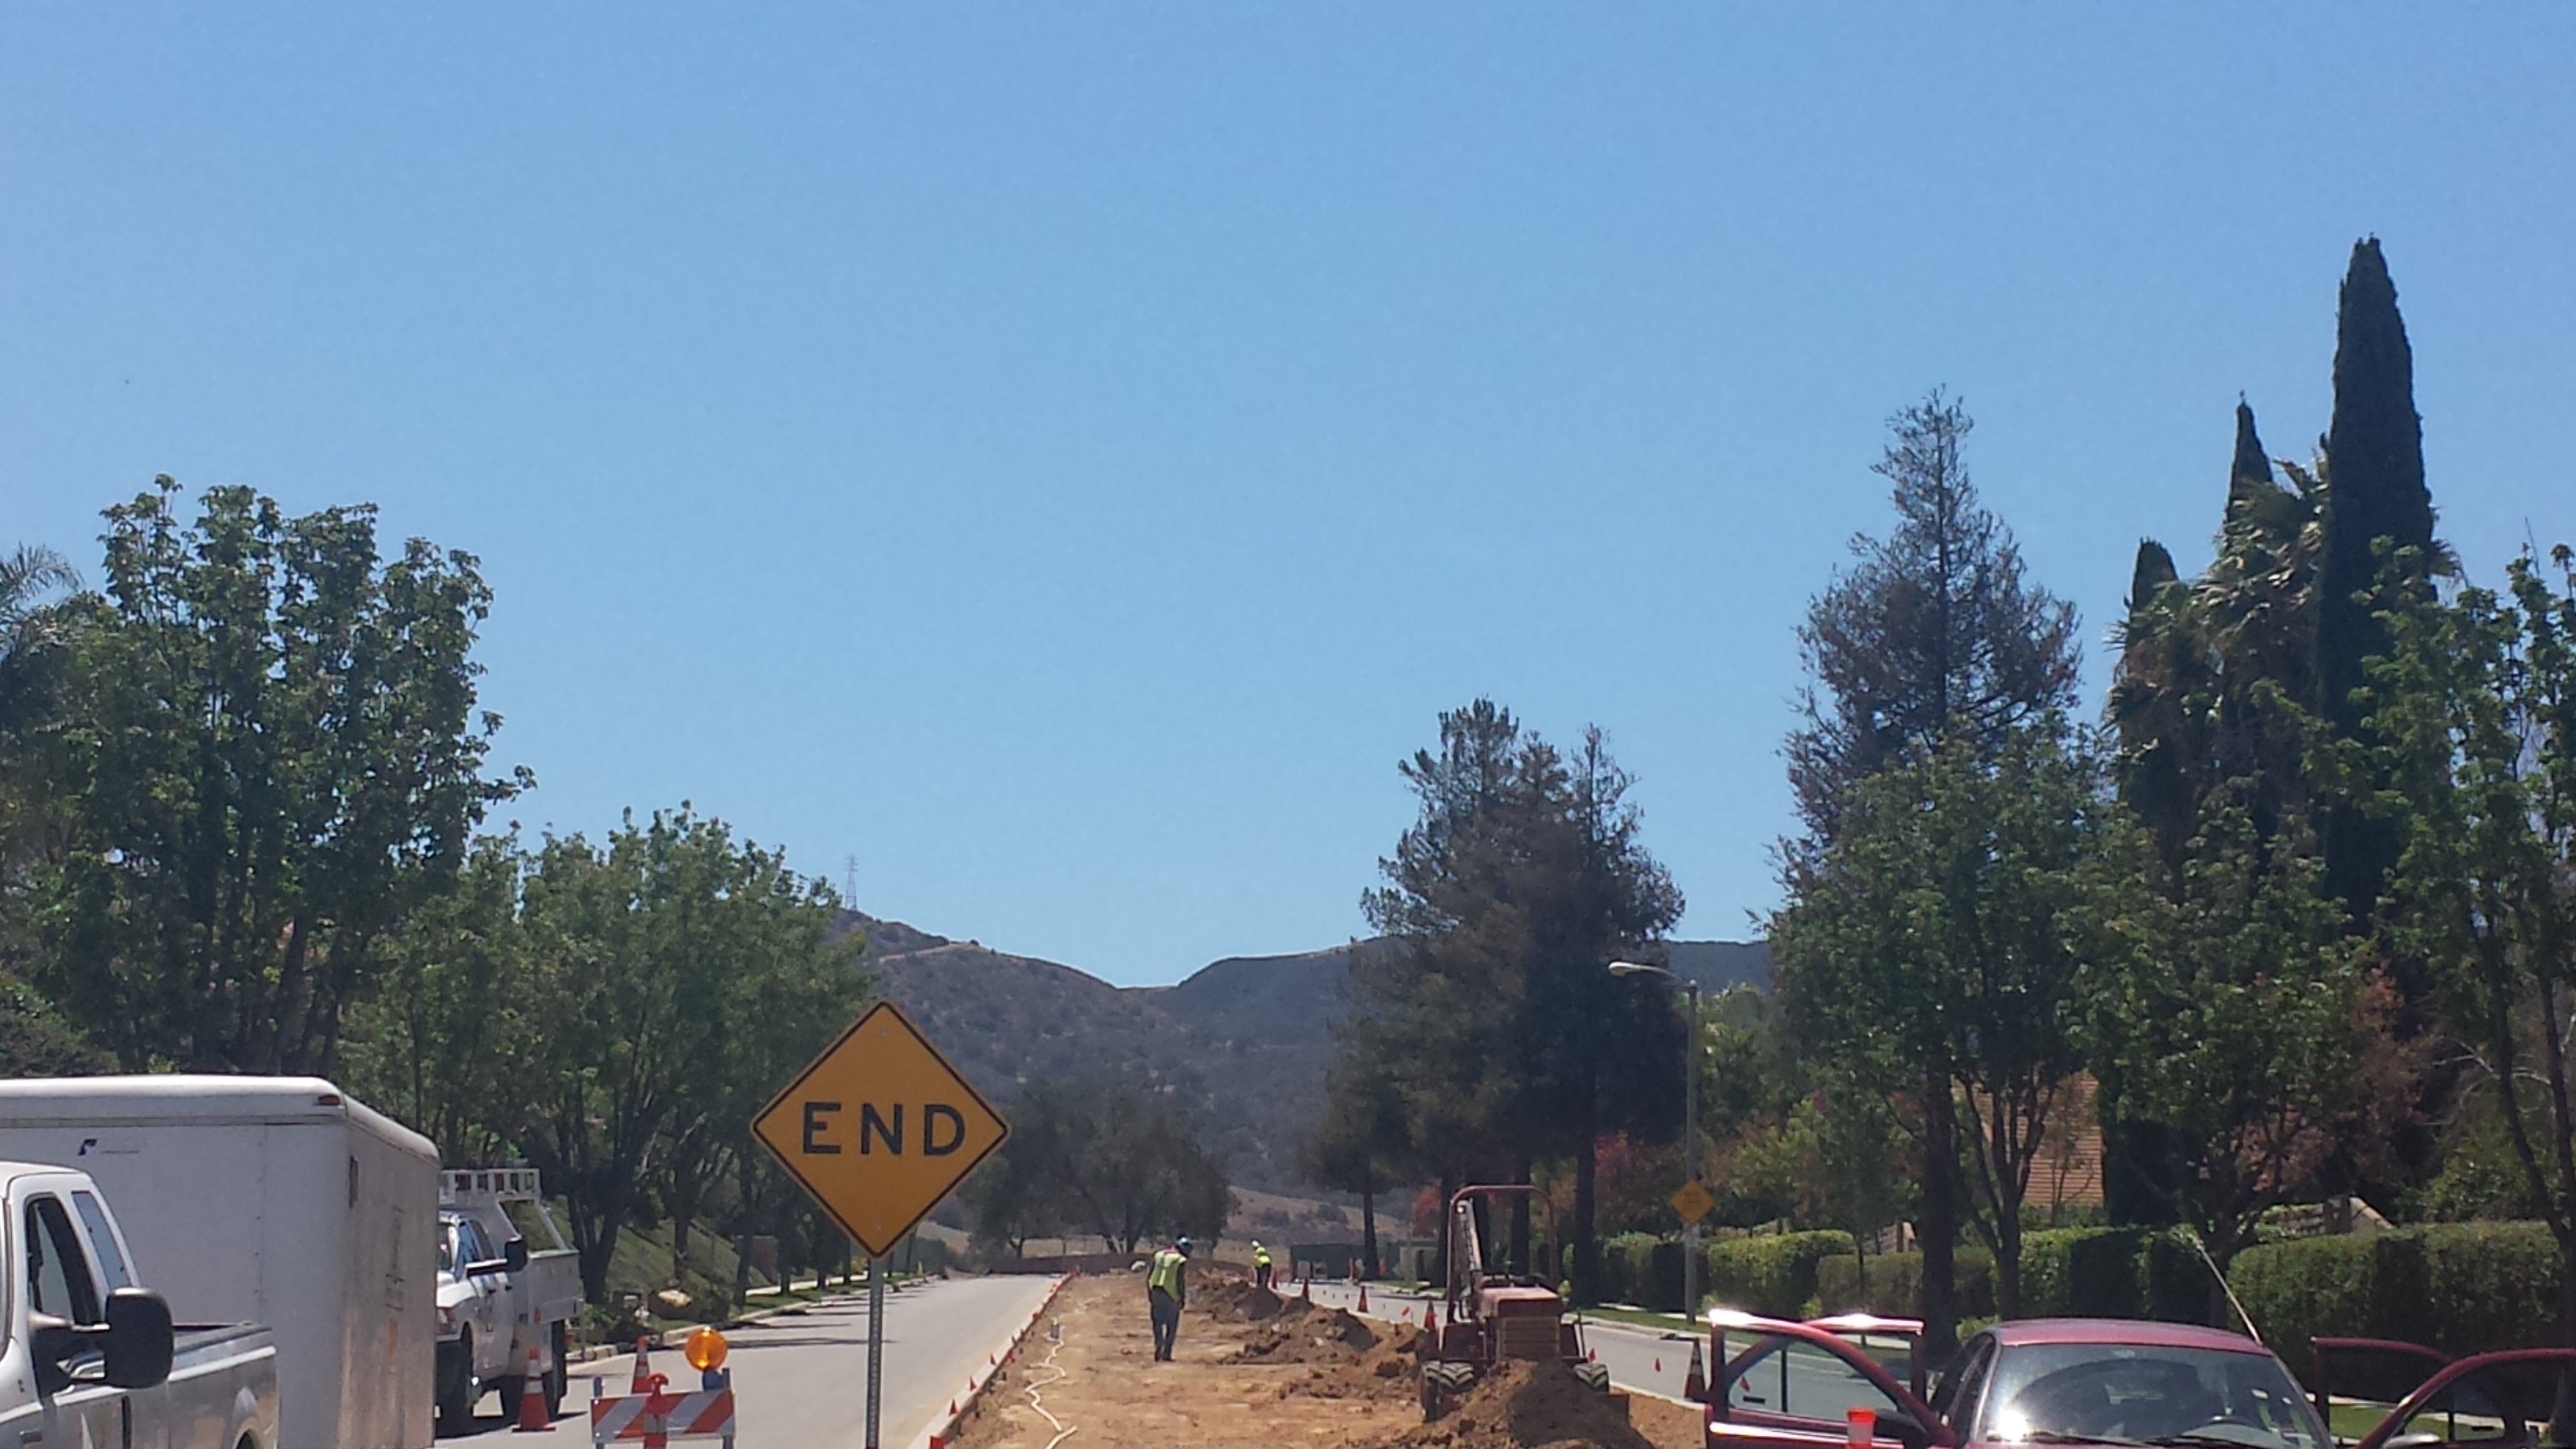 Runkle Ranch Rd, This leads right into Runkle Canyon Homes